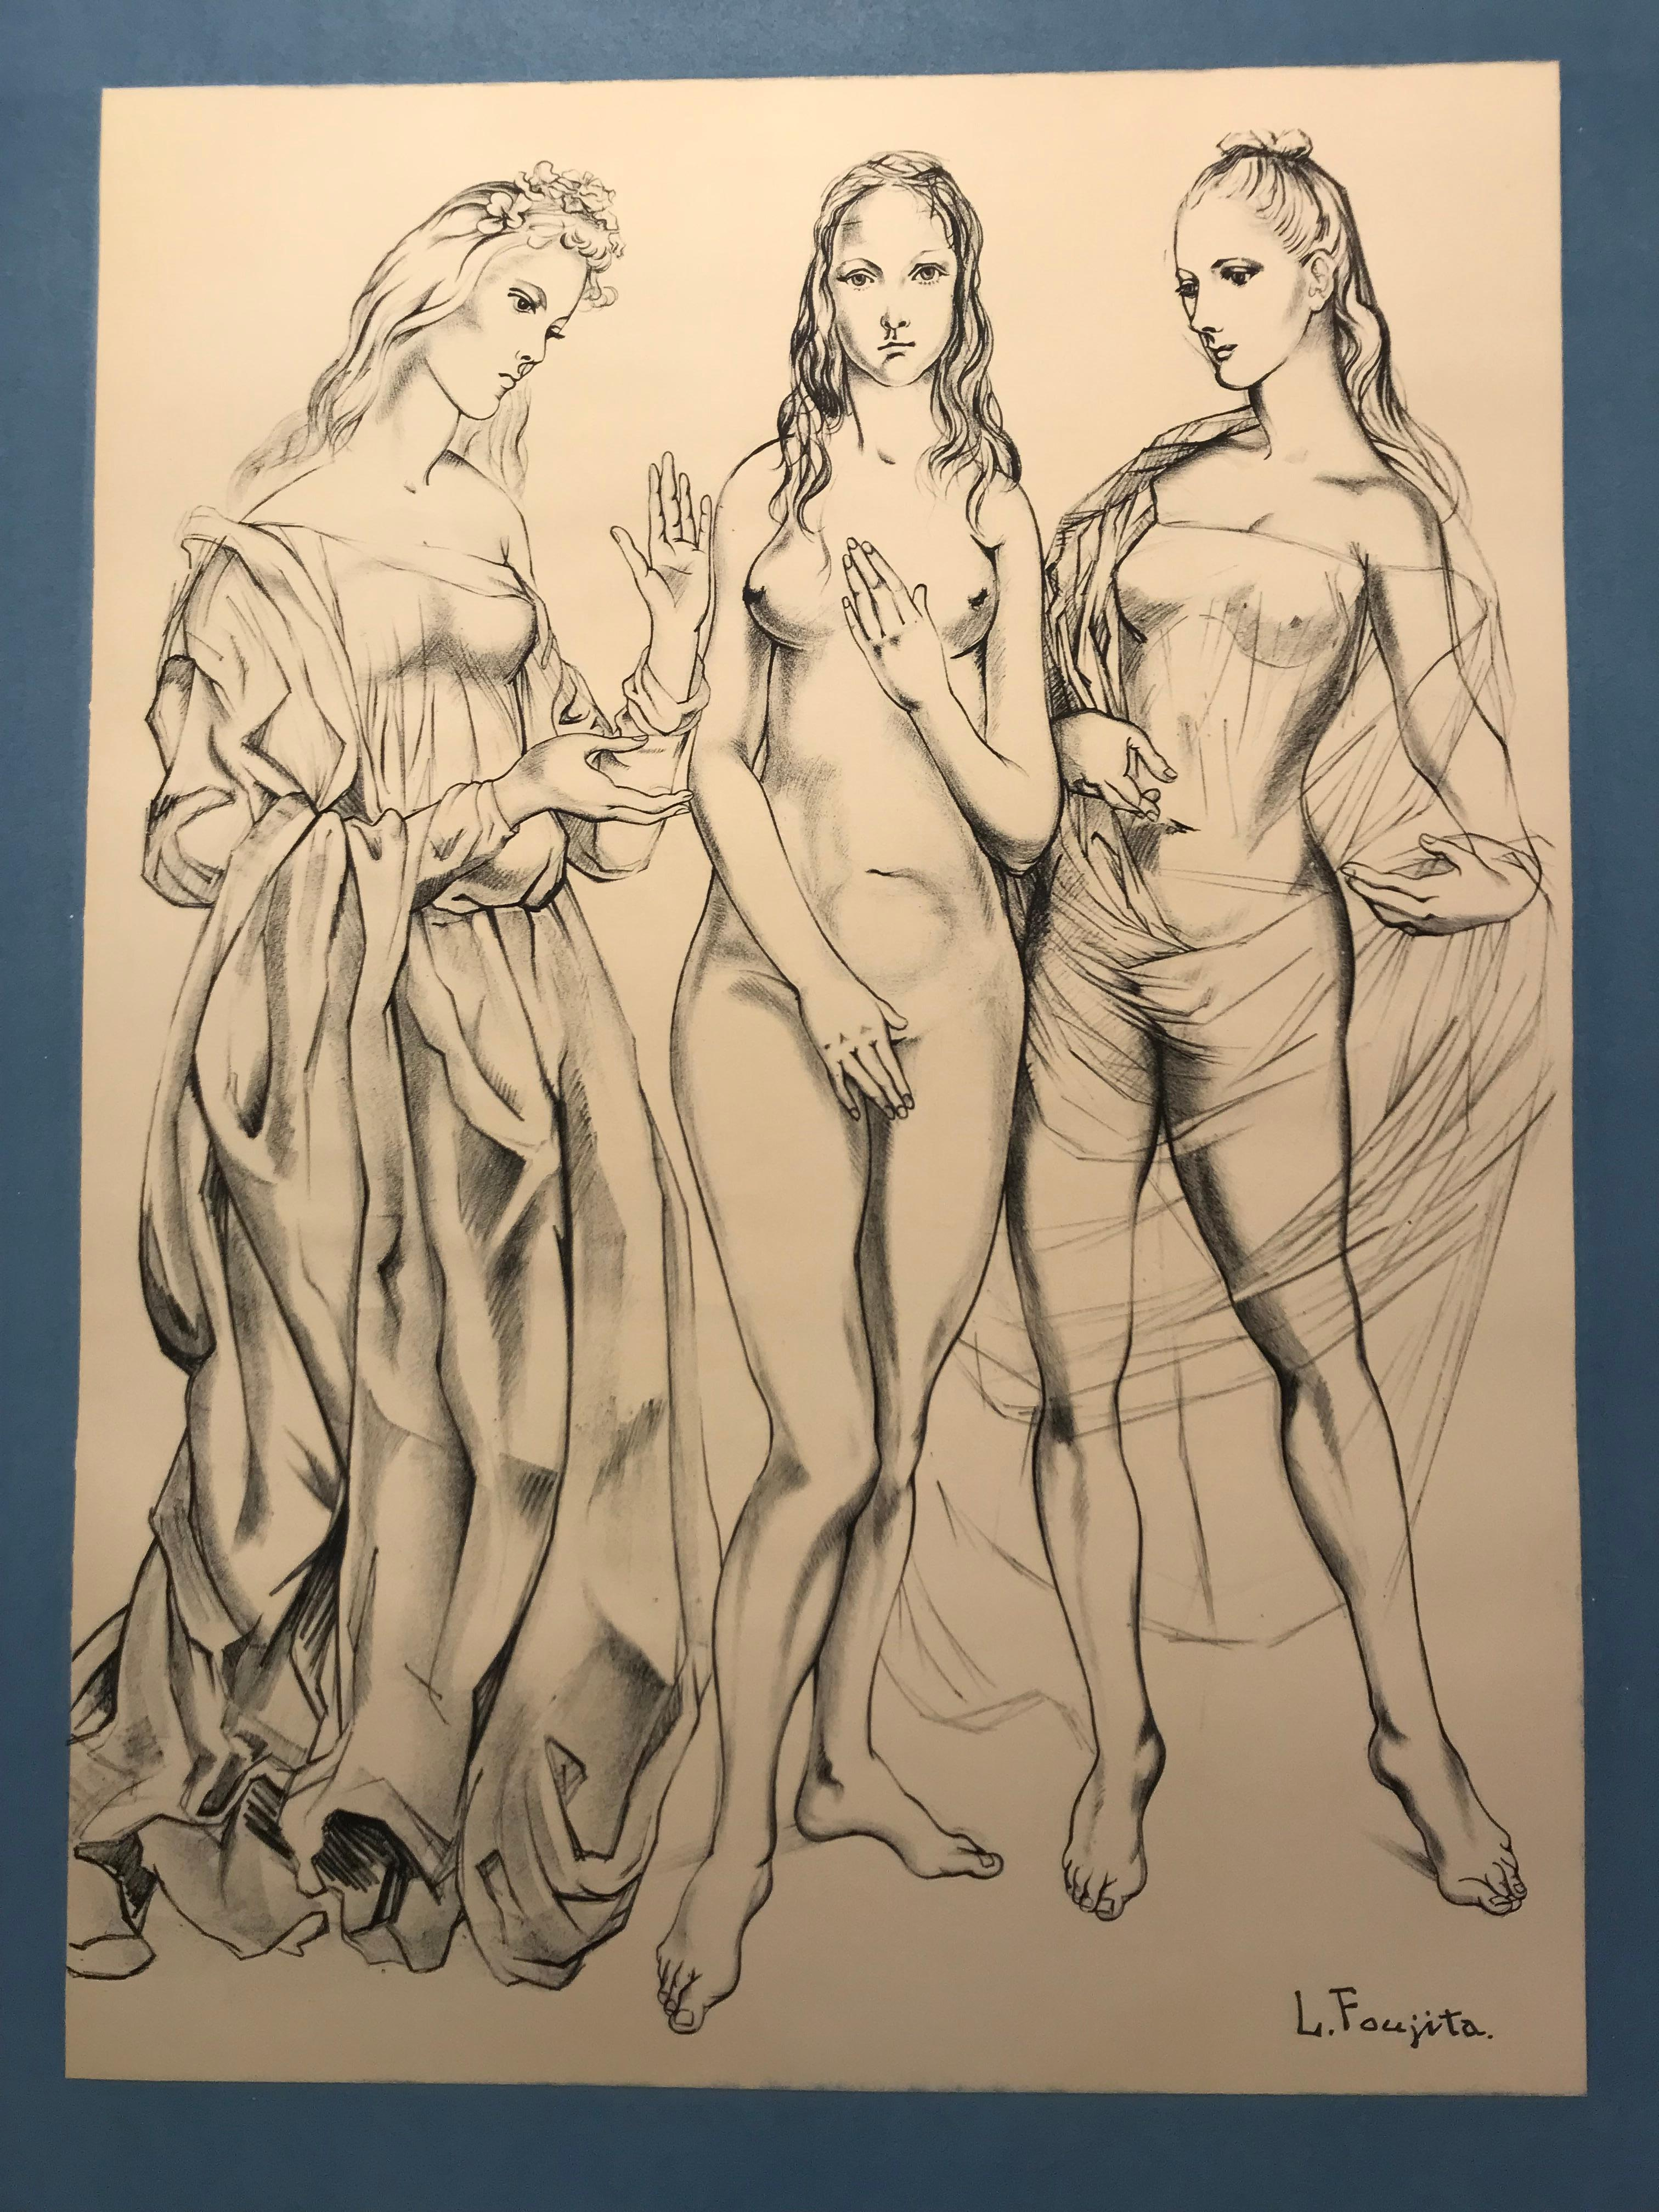 Poster edition of The Three Graces (before text)